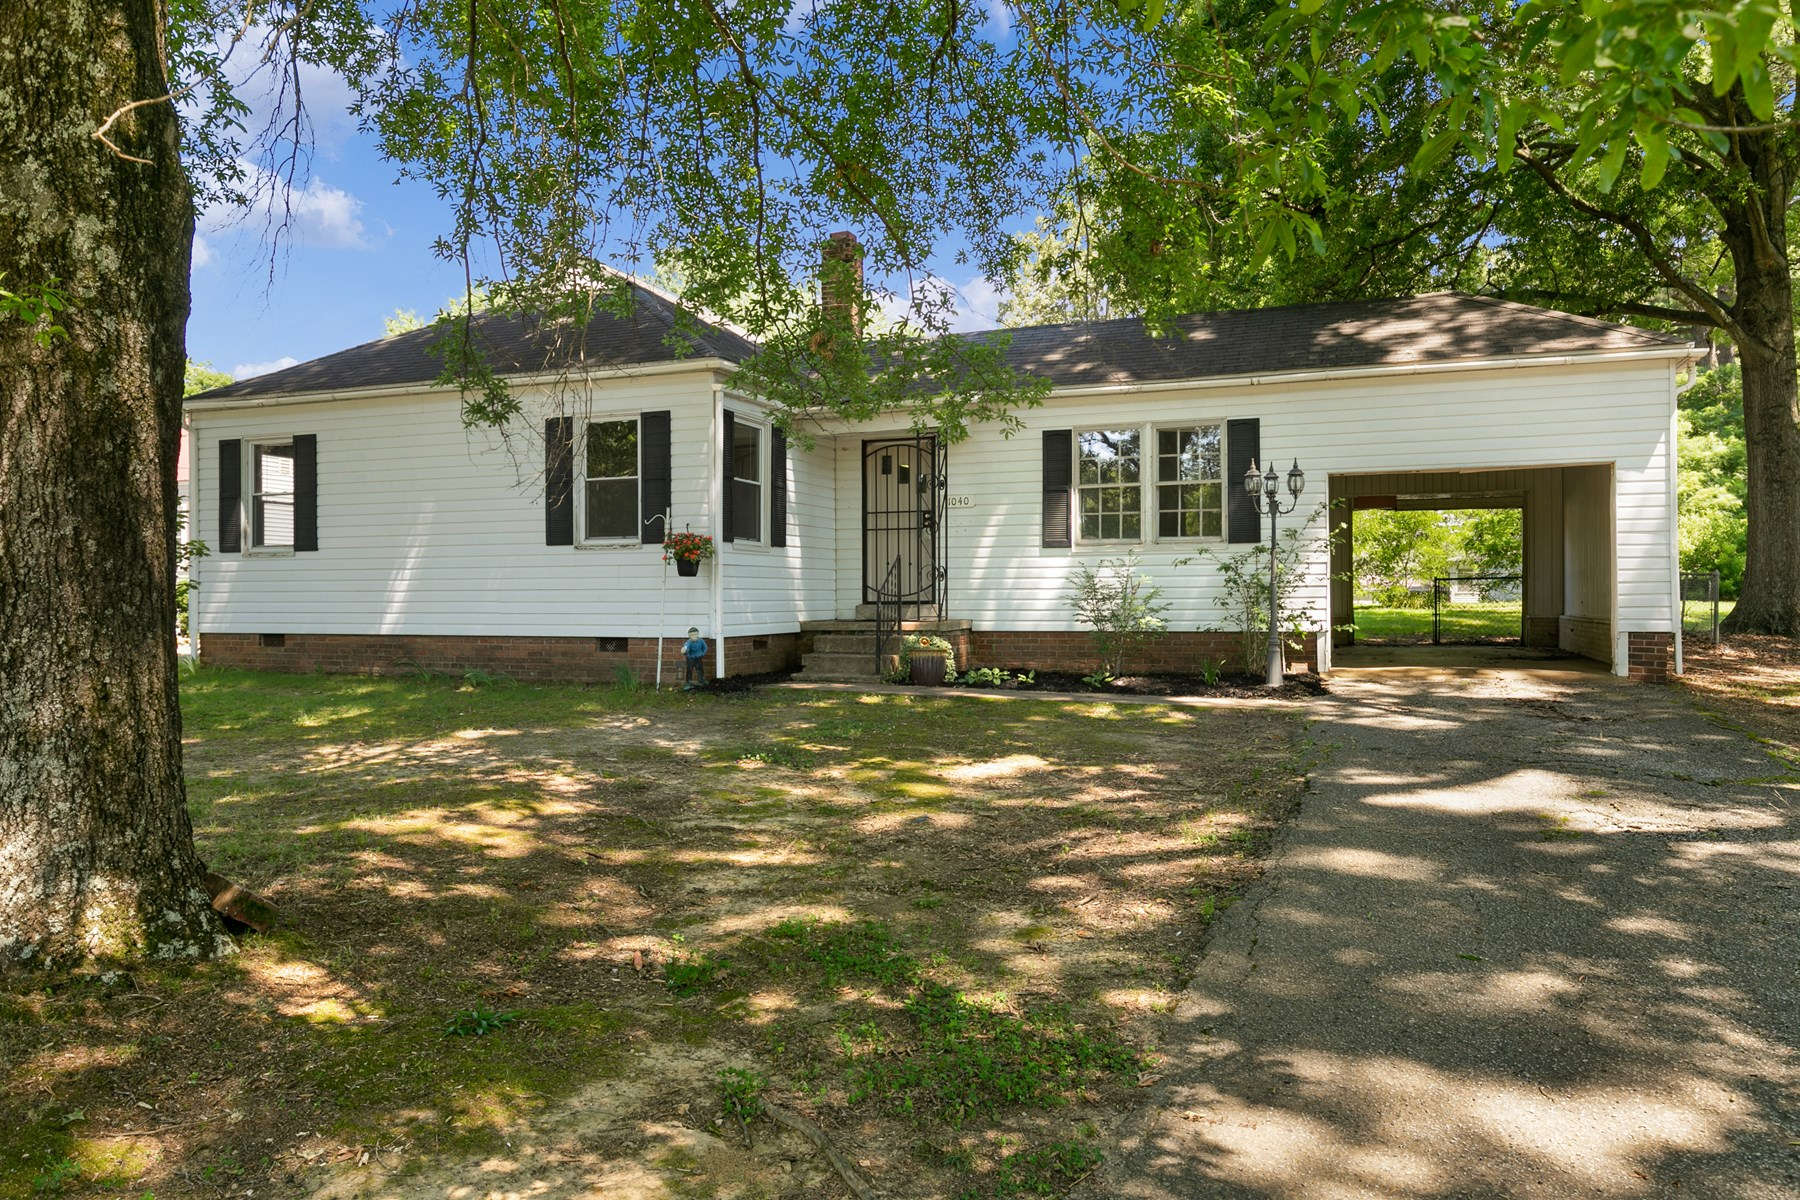 3 Bedroom Home for Sale in Milan, TN near Schools & Daycares